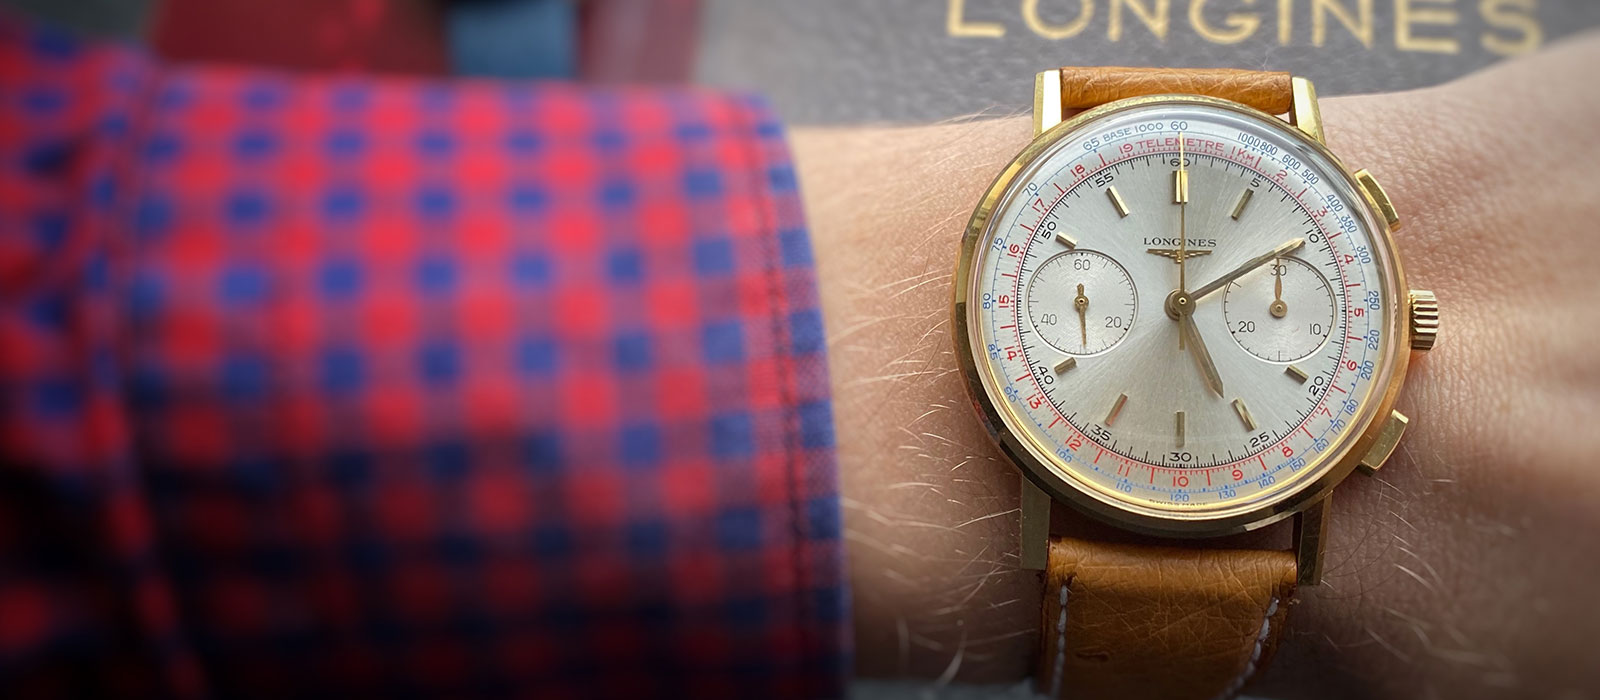 Vintage Longines Chronograph 7414 Flyback